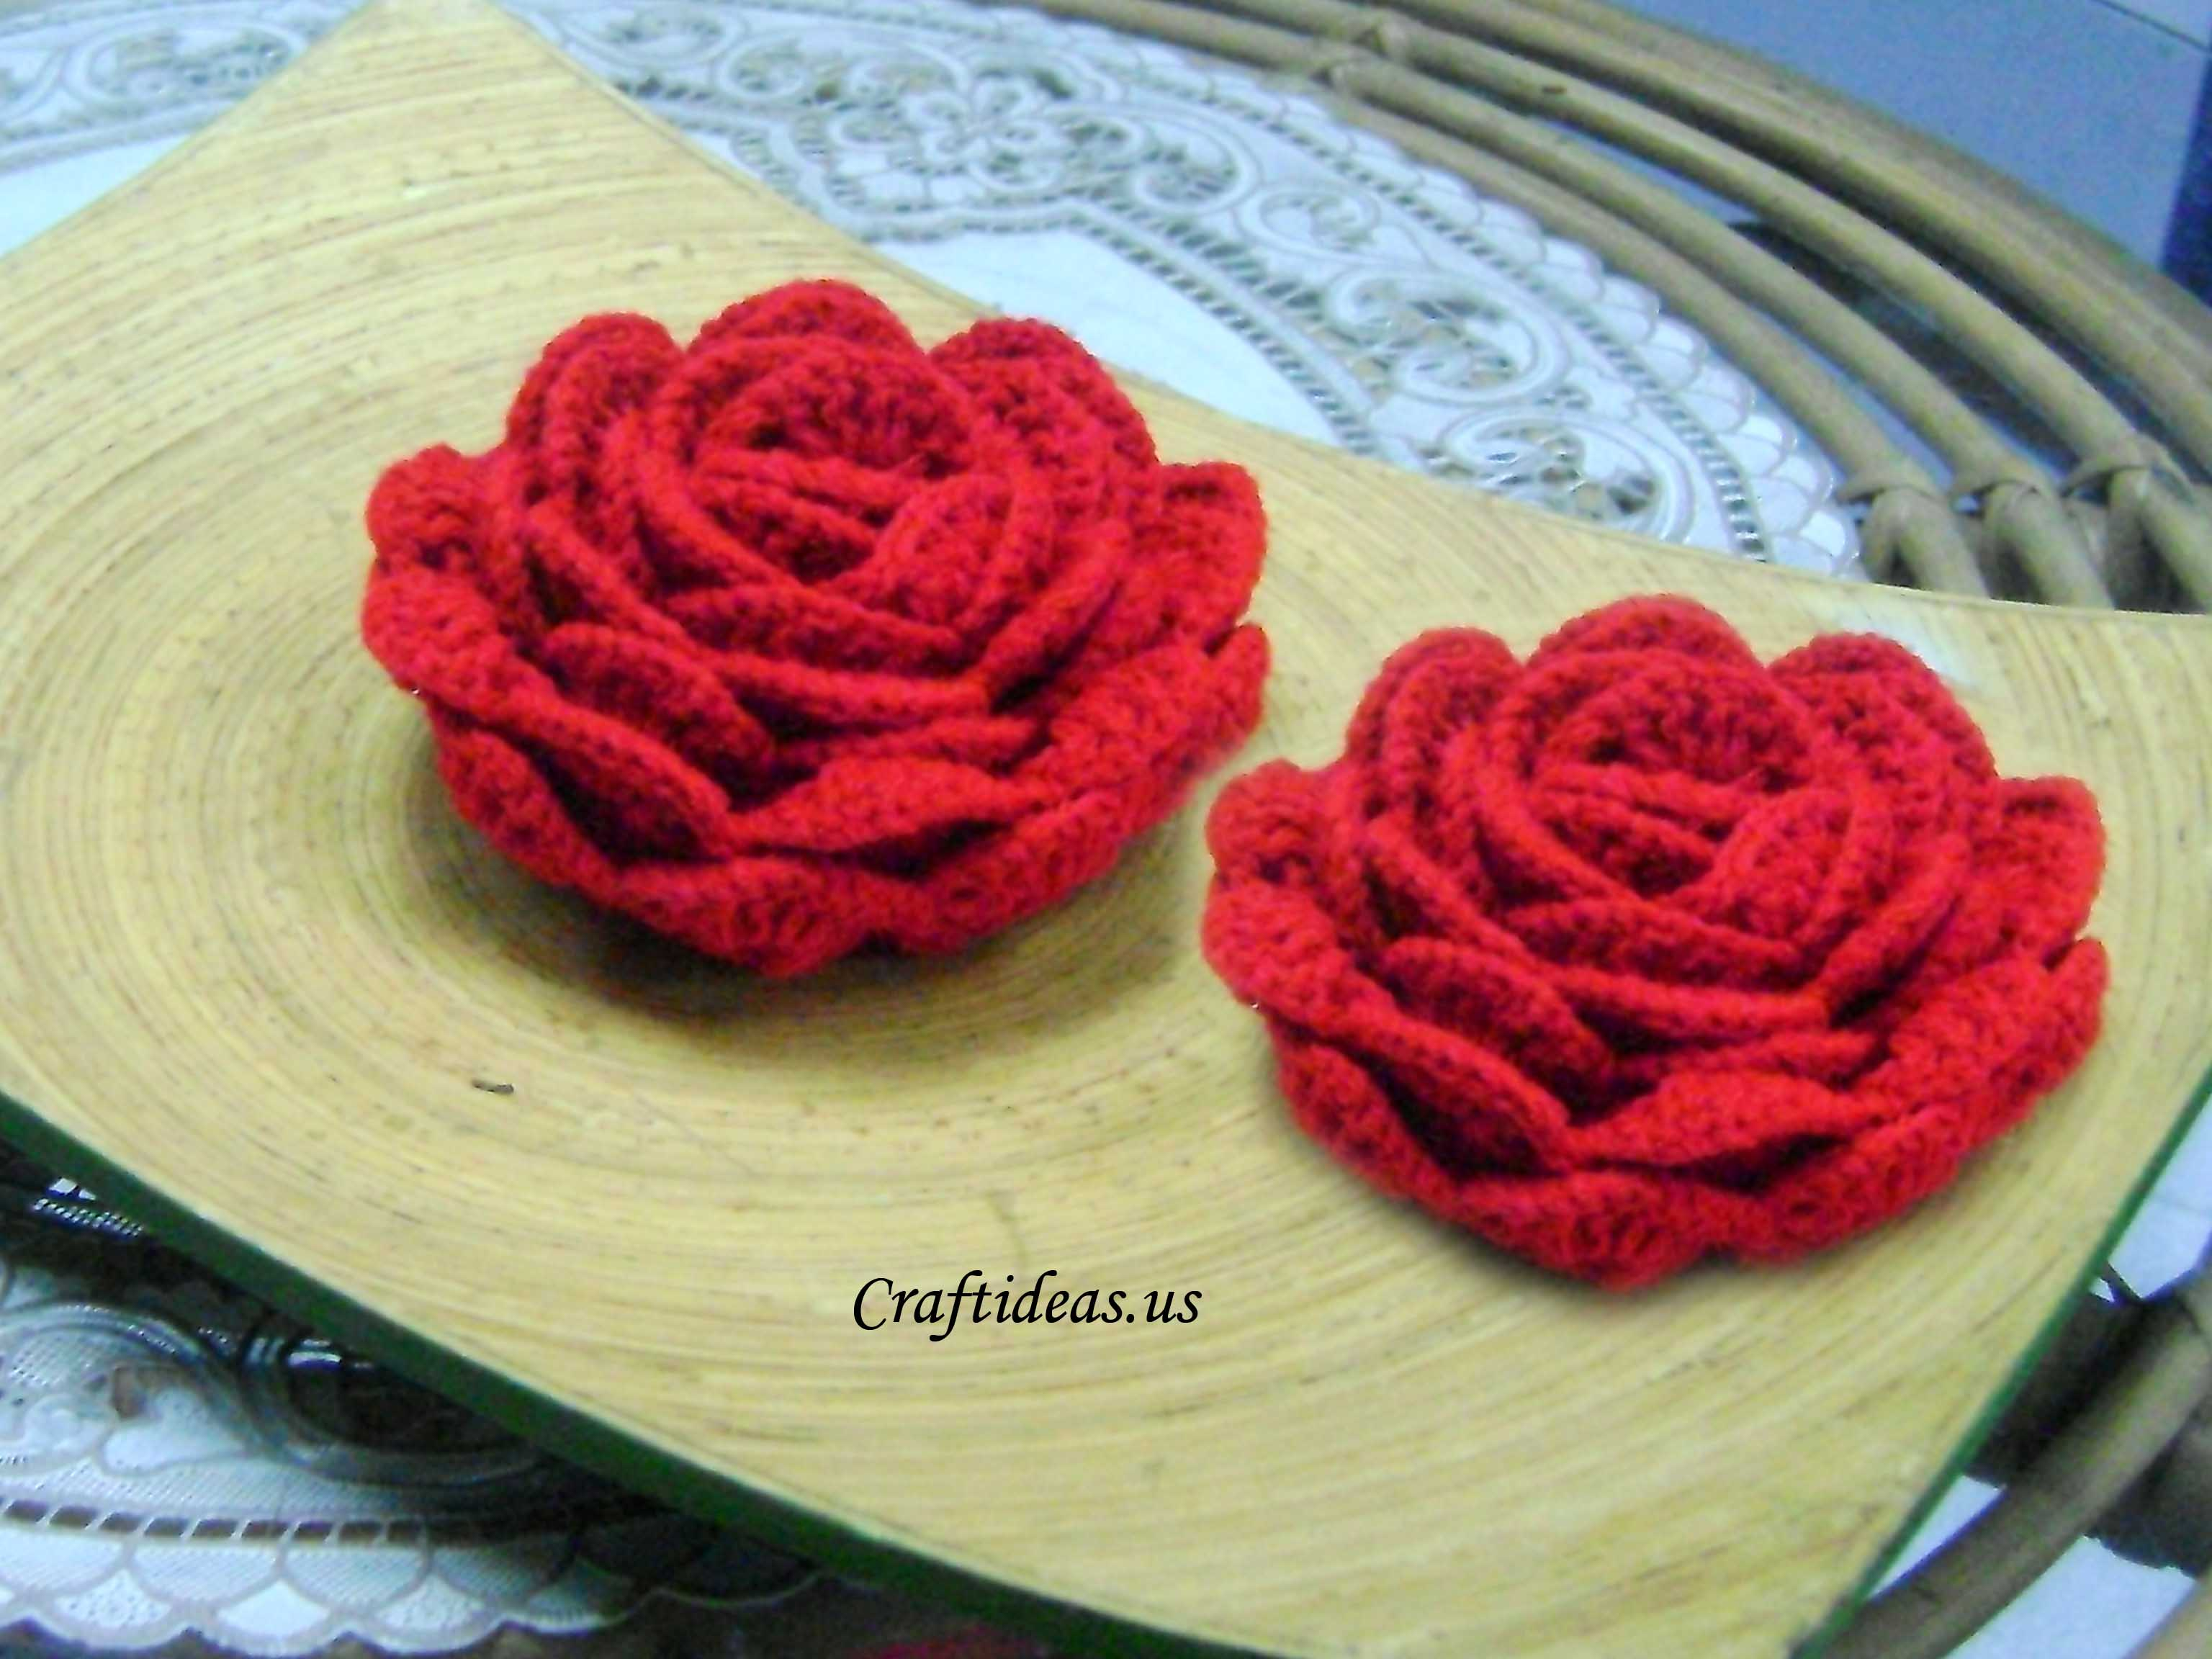 Crocheting Tutorials : Crochet flower tutorial - Craft Ideas